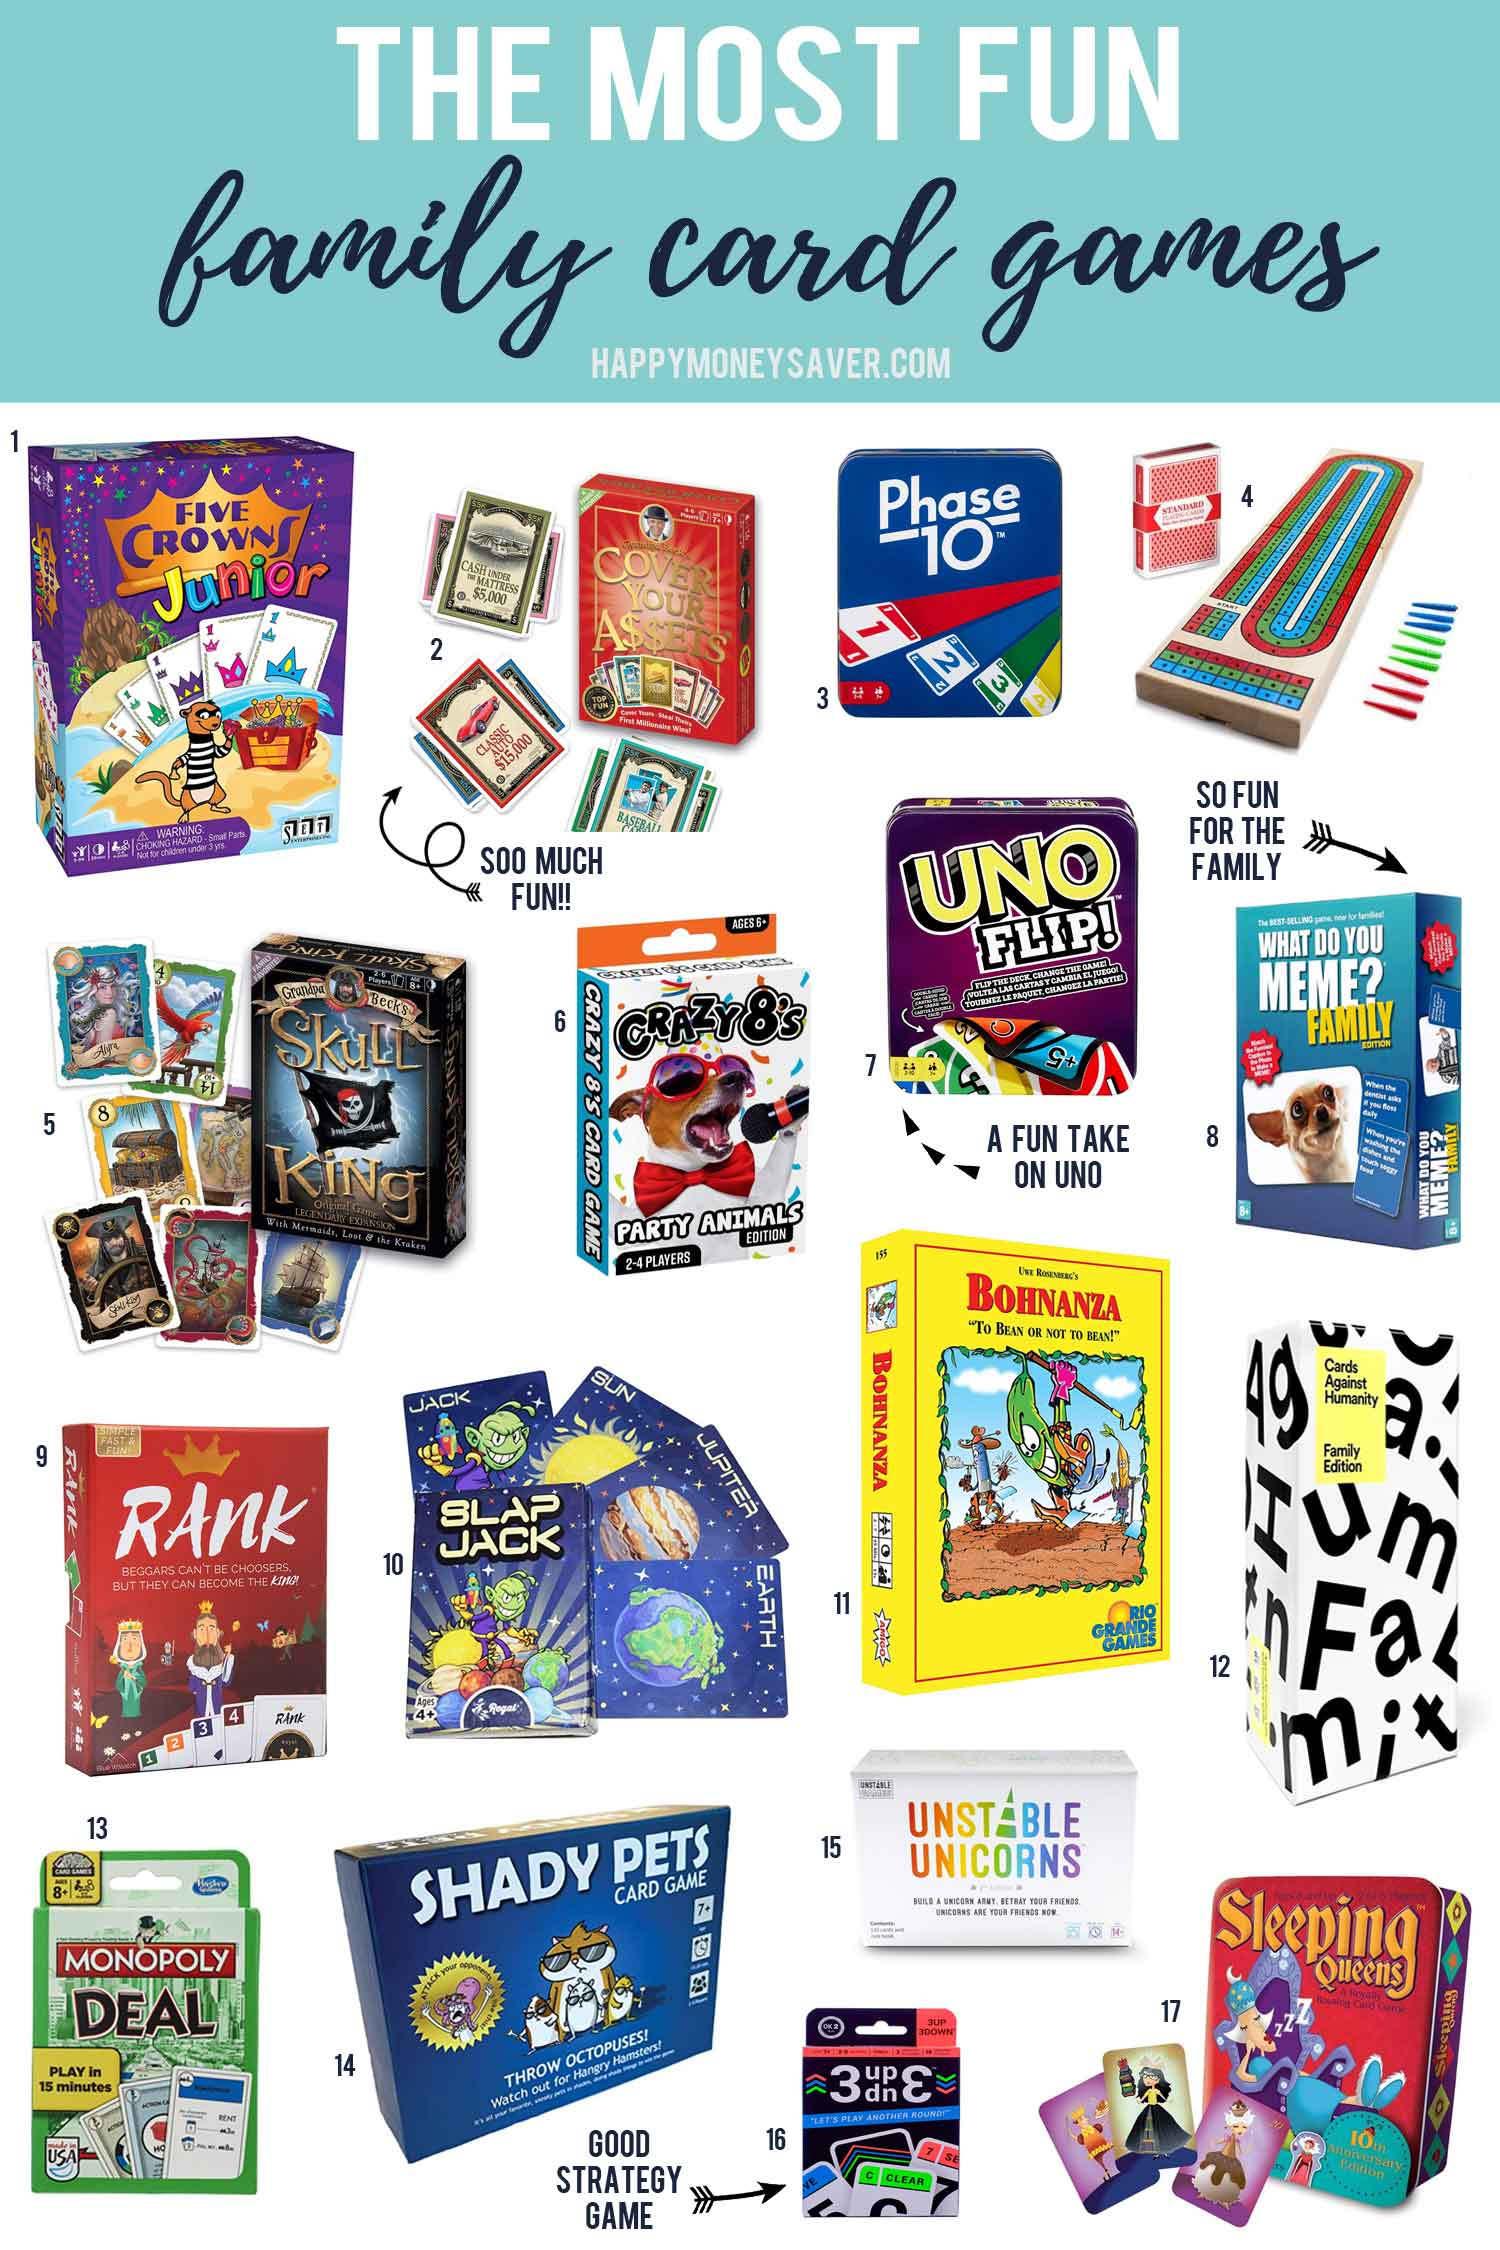 The most fun family card games. image with lots of product images each with a corresponding number on it.